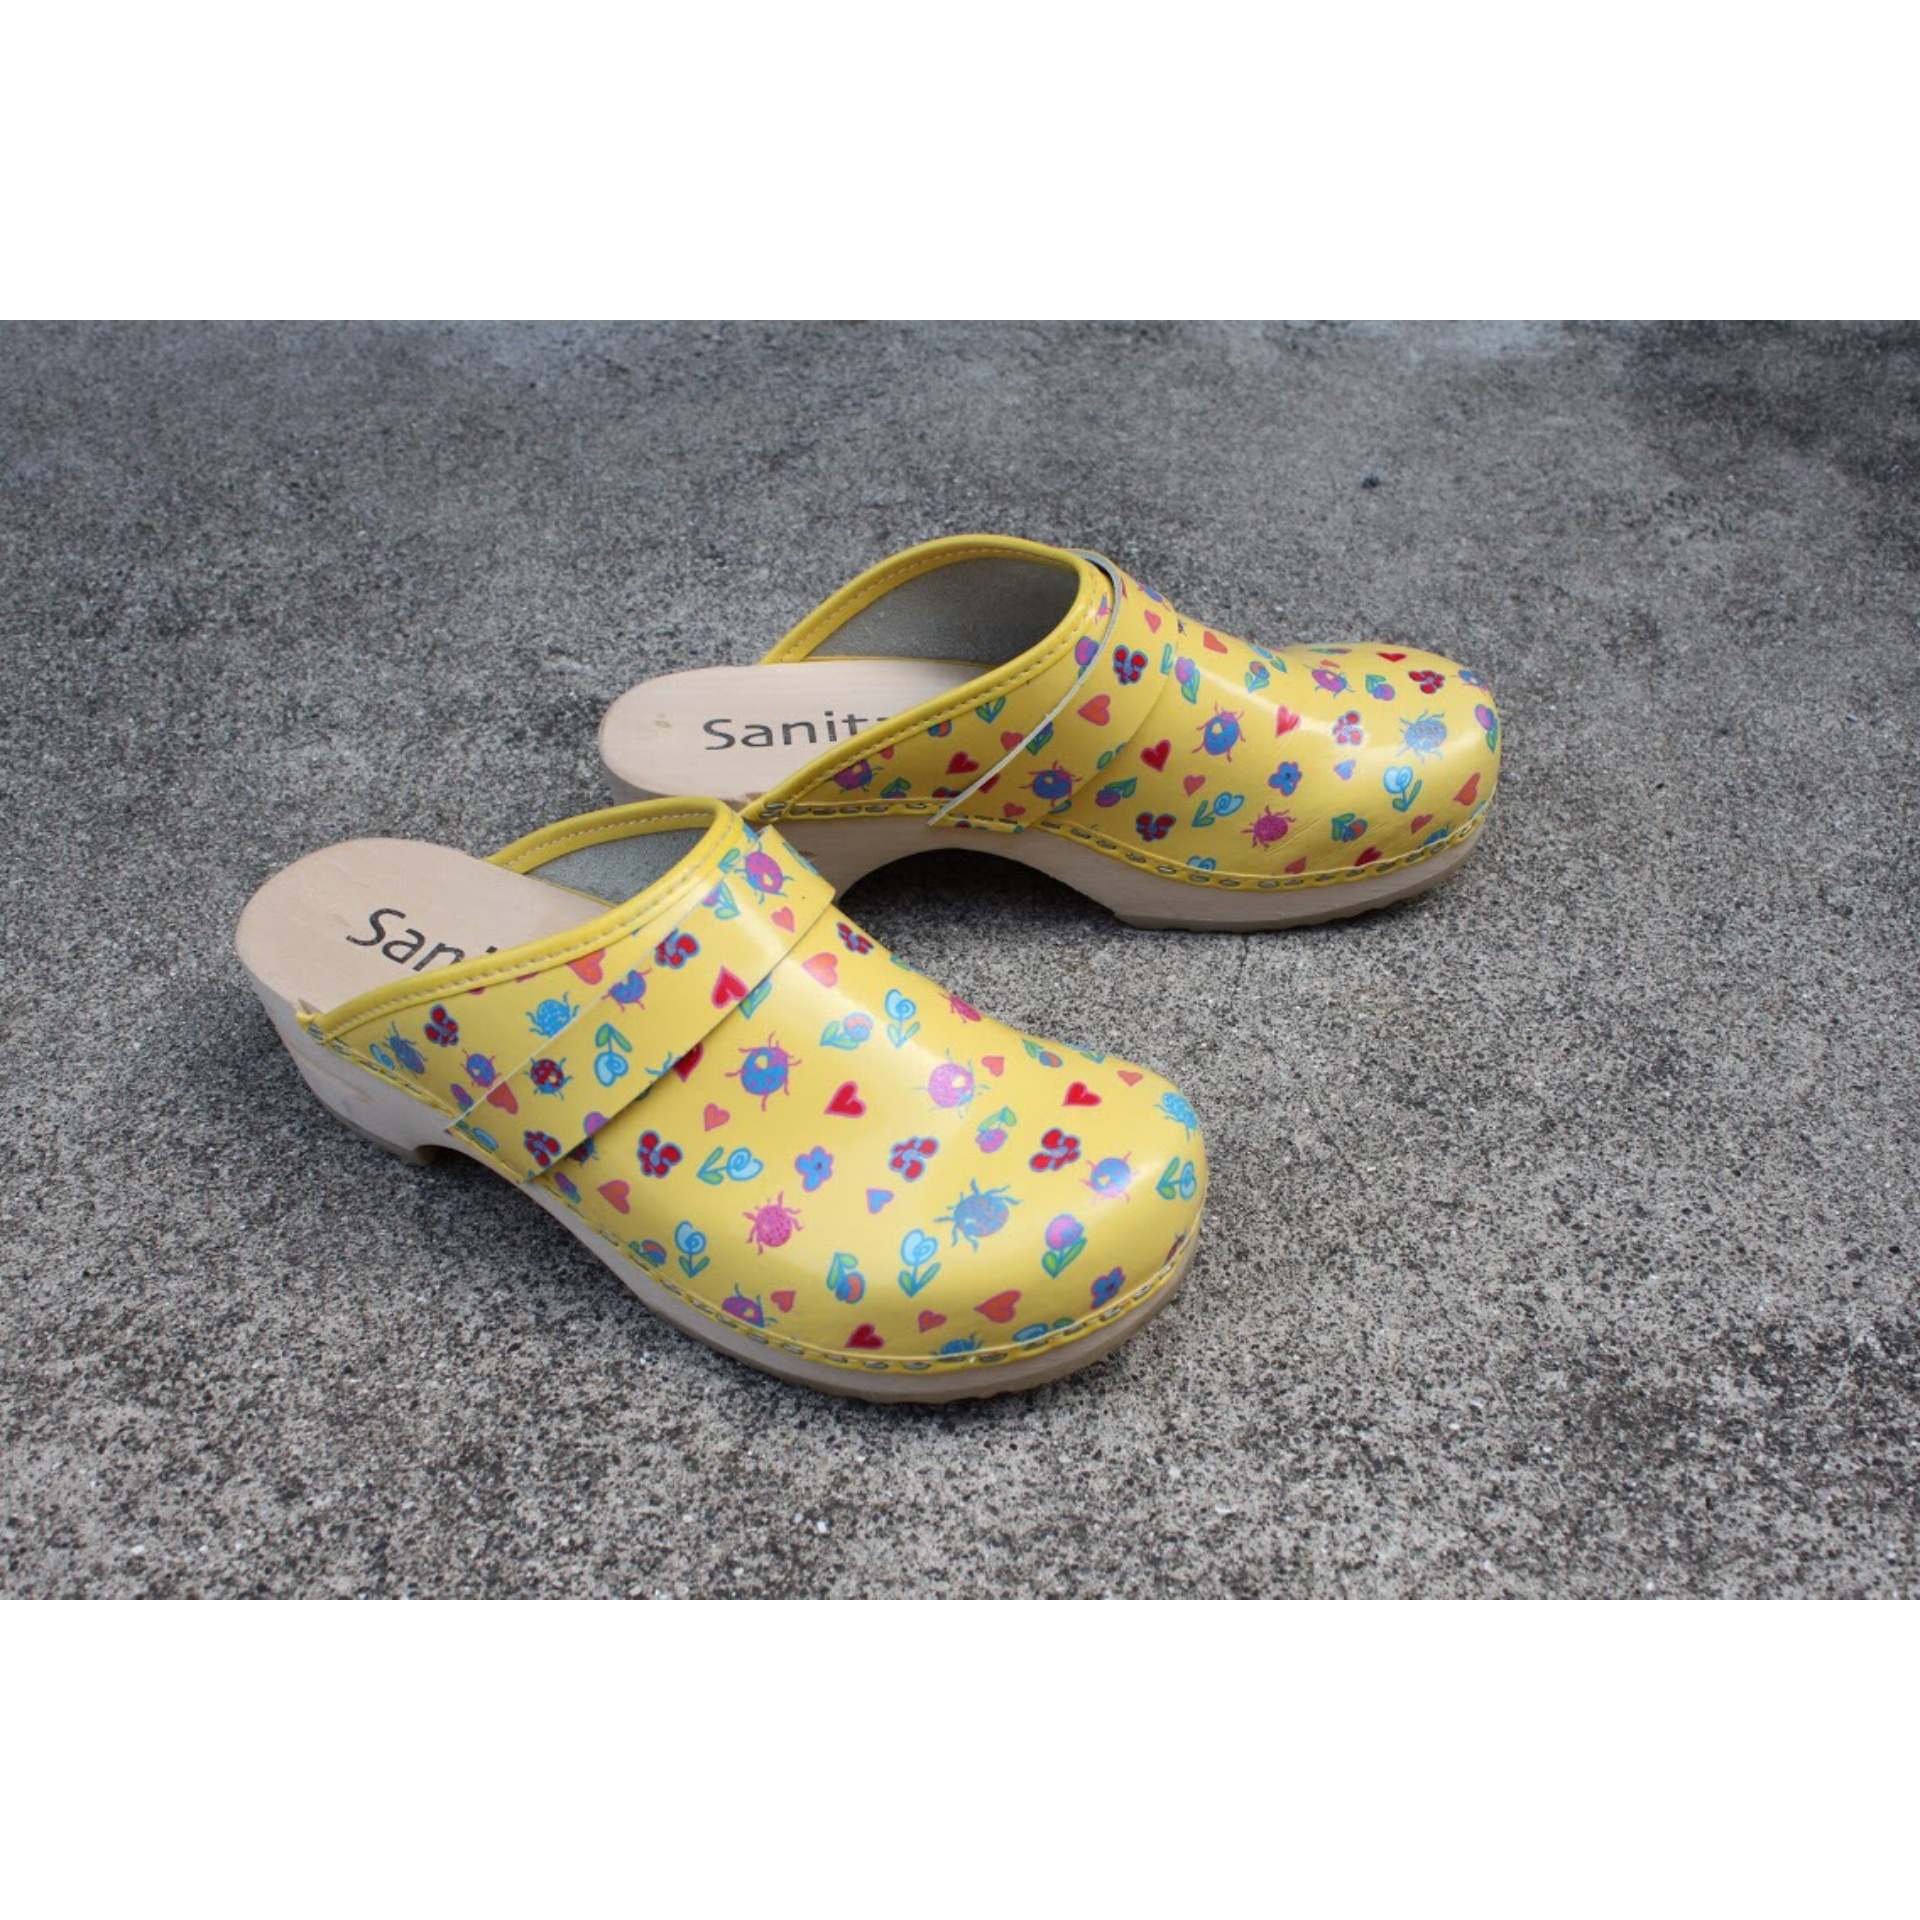 Vintage open-back clog